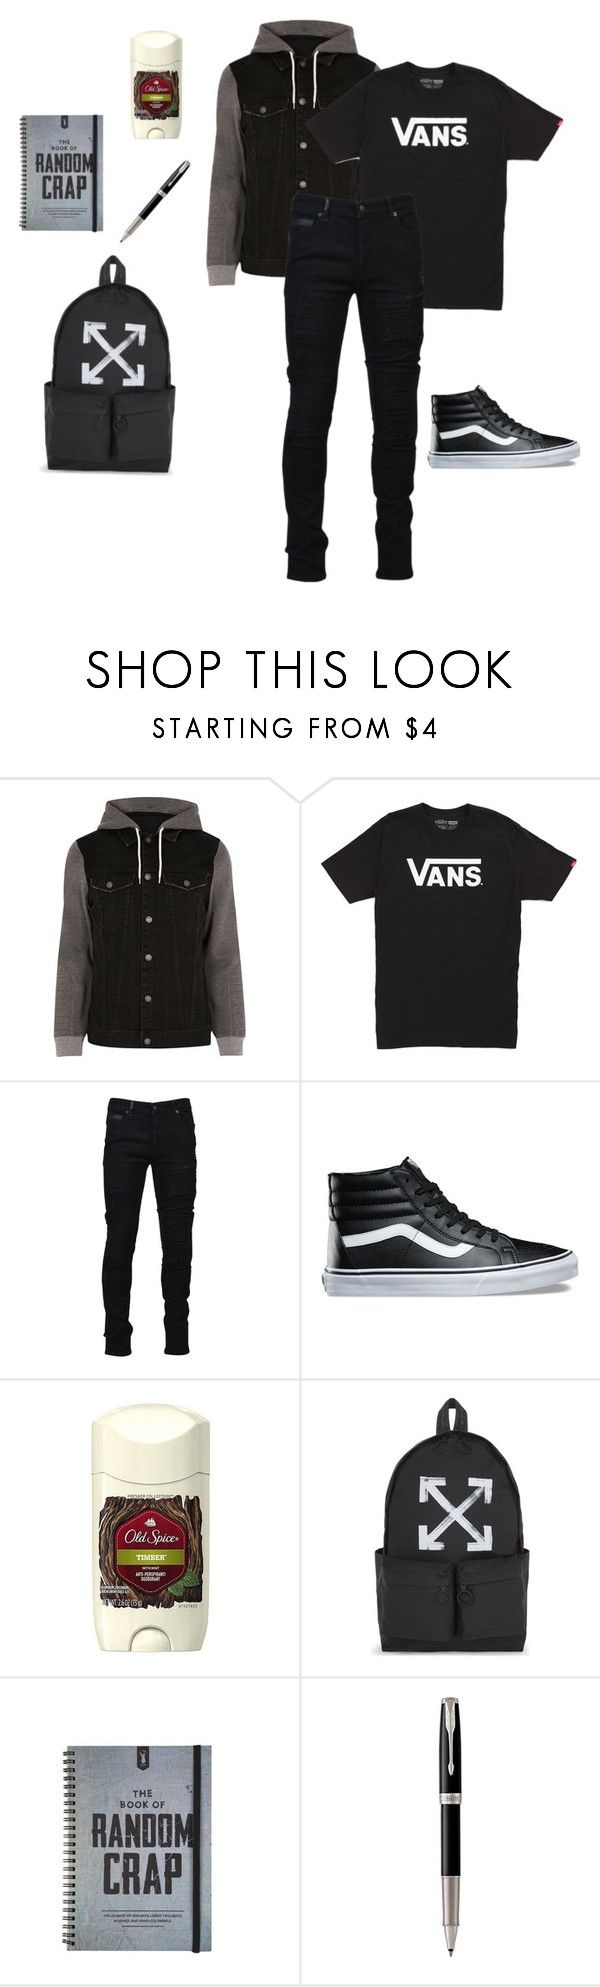 """""""Max's Look, Sophomore Year: Day 1~HSLS"""" by mystic-moonstone ❤ liked on Polyvore featuring River Island, Vans, Marcelo Burlon, Old Spice, Off-White, Parker, men's fashion and menswear"""